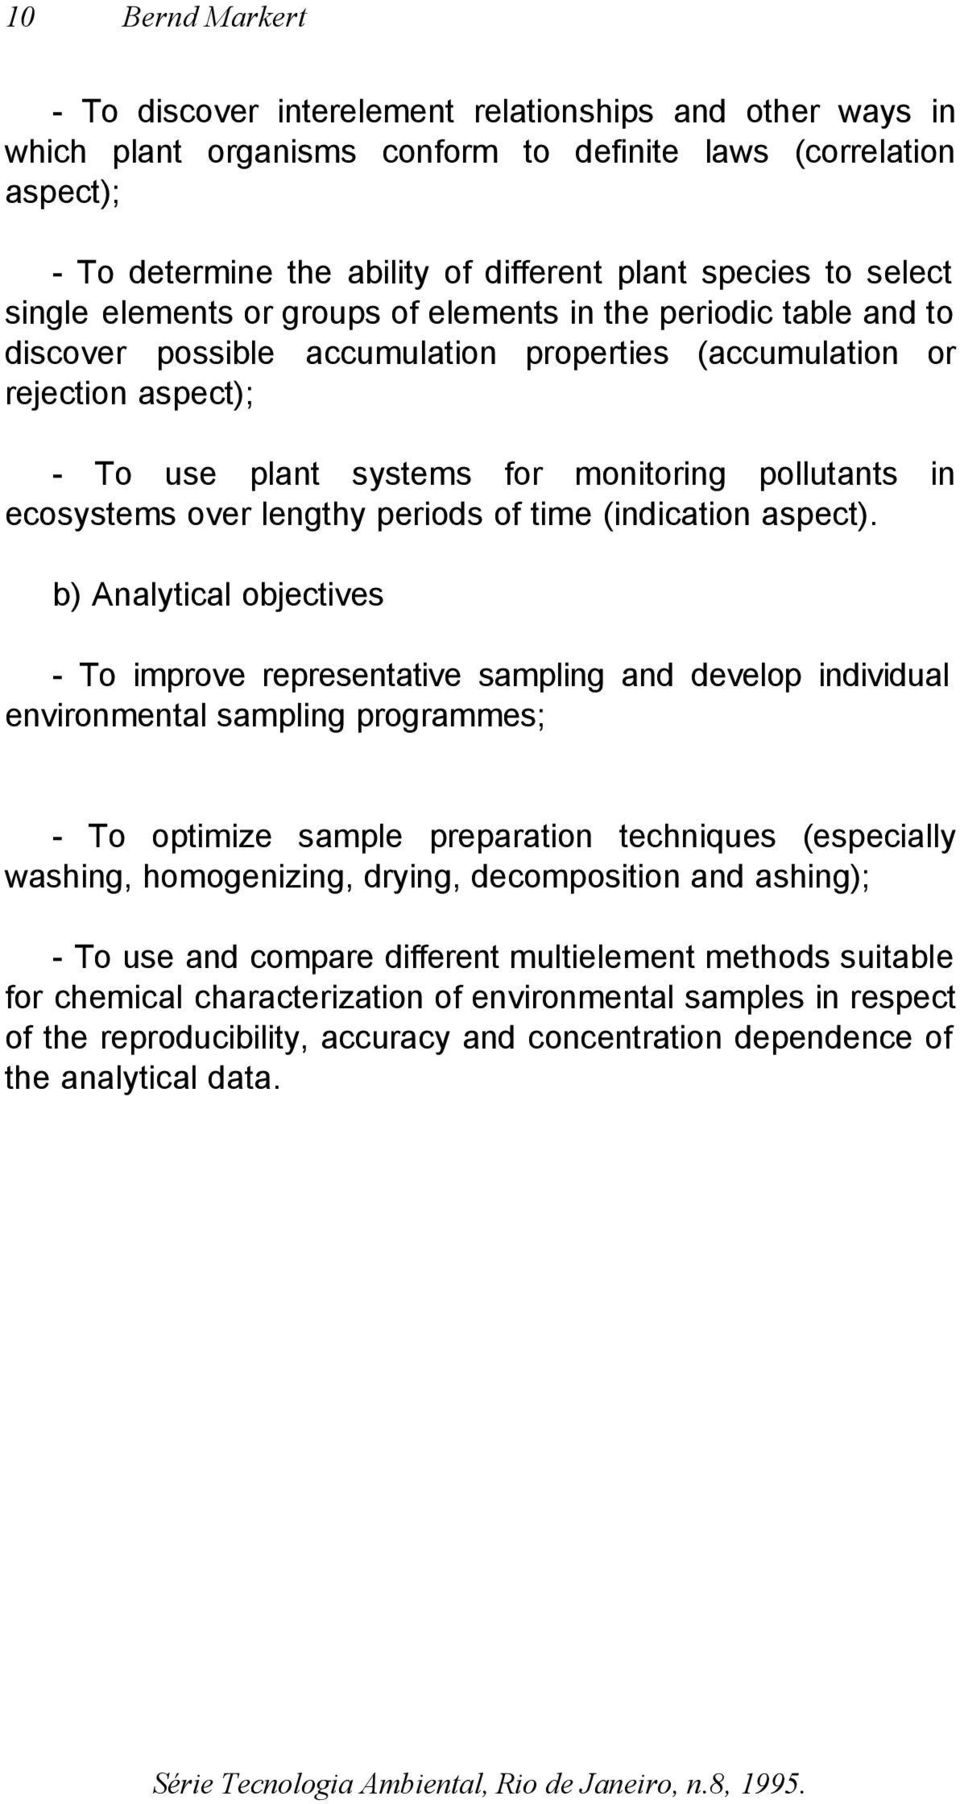 pollutants in ecosystems over lengthy periods of time (indication aspect).